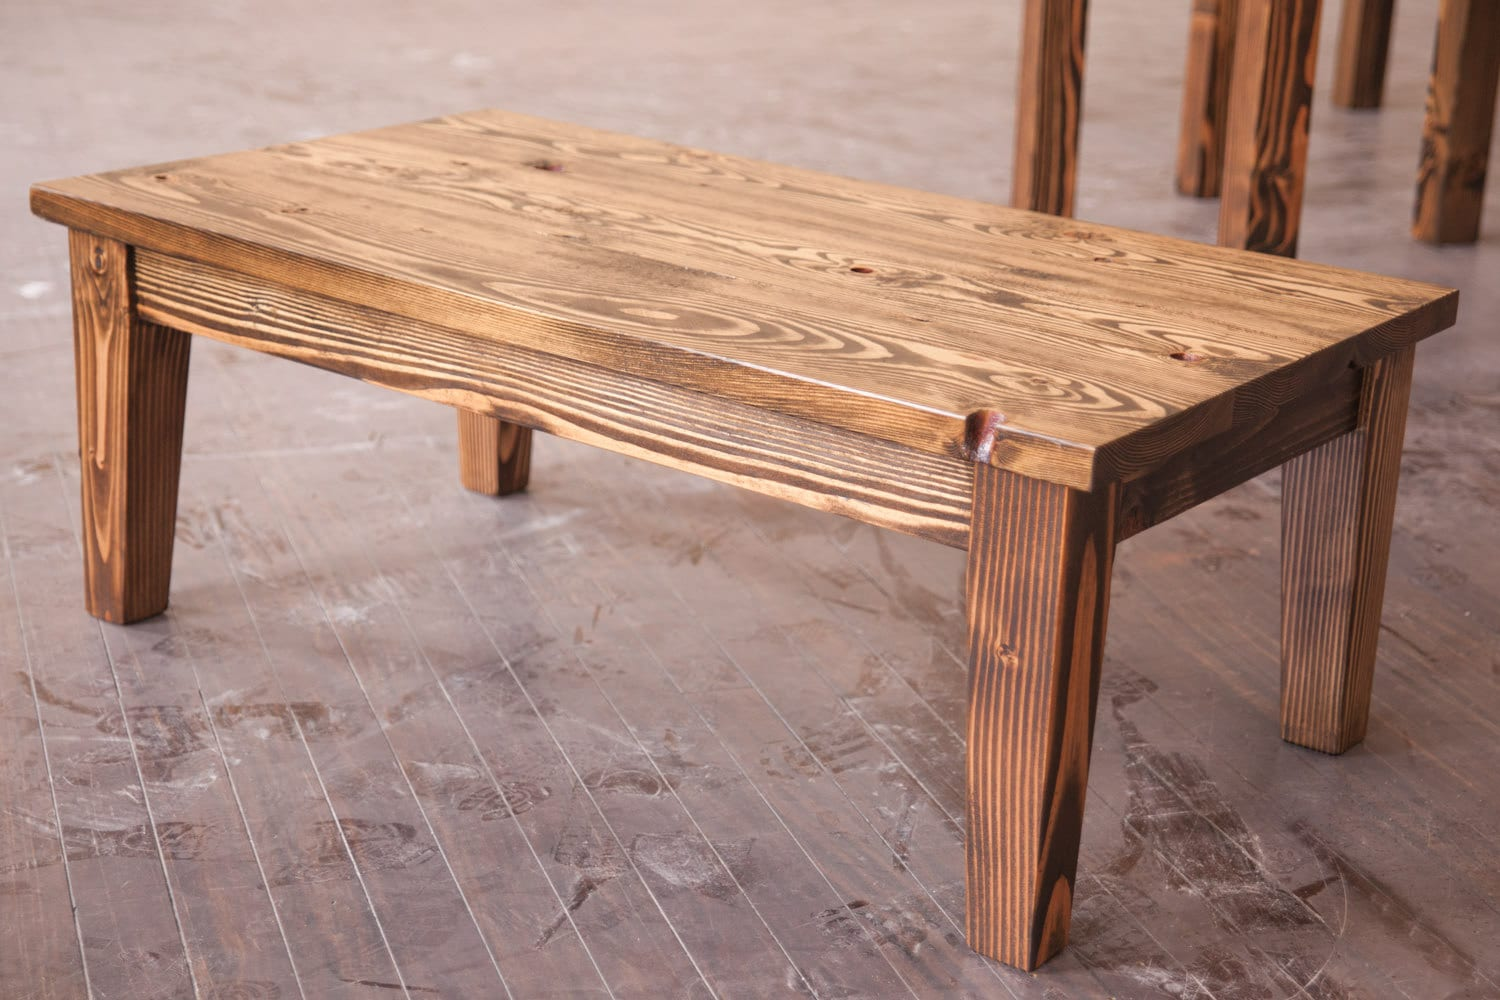 Solid Wood Farmhouse Coffee Table | Rustic Coffee Table | Coffee Table With  Tapered Legs |